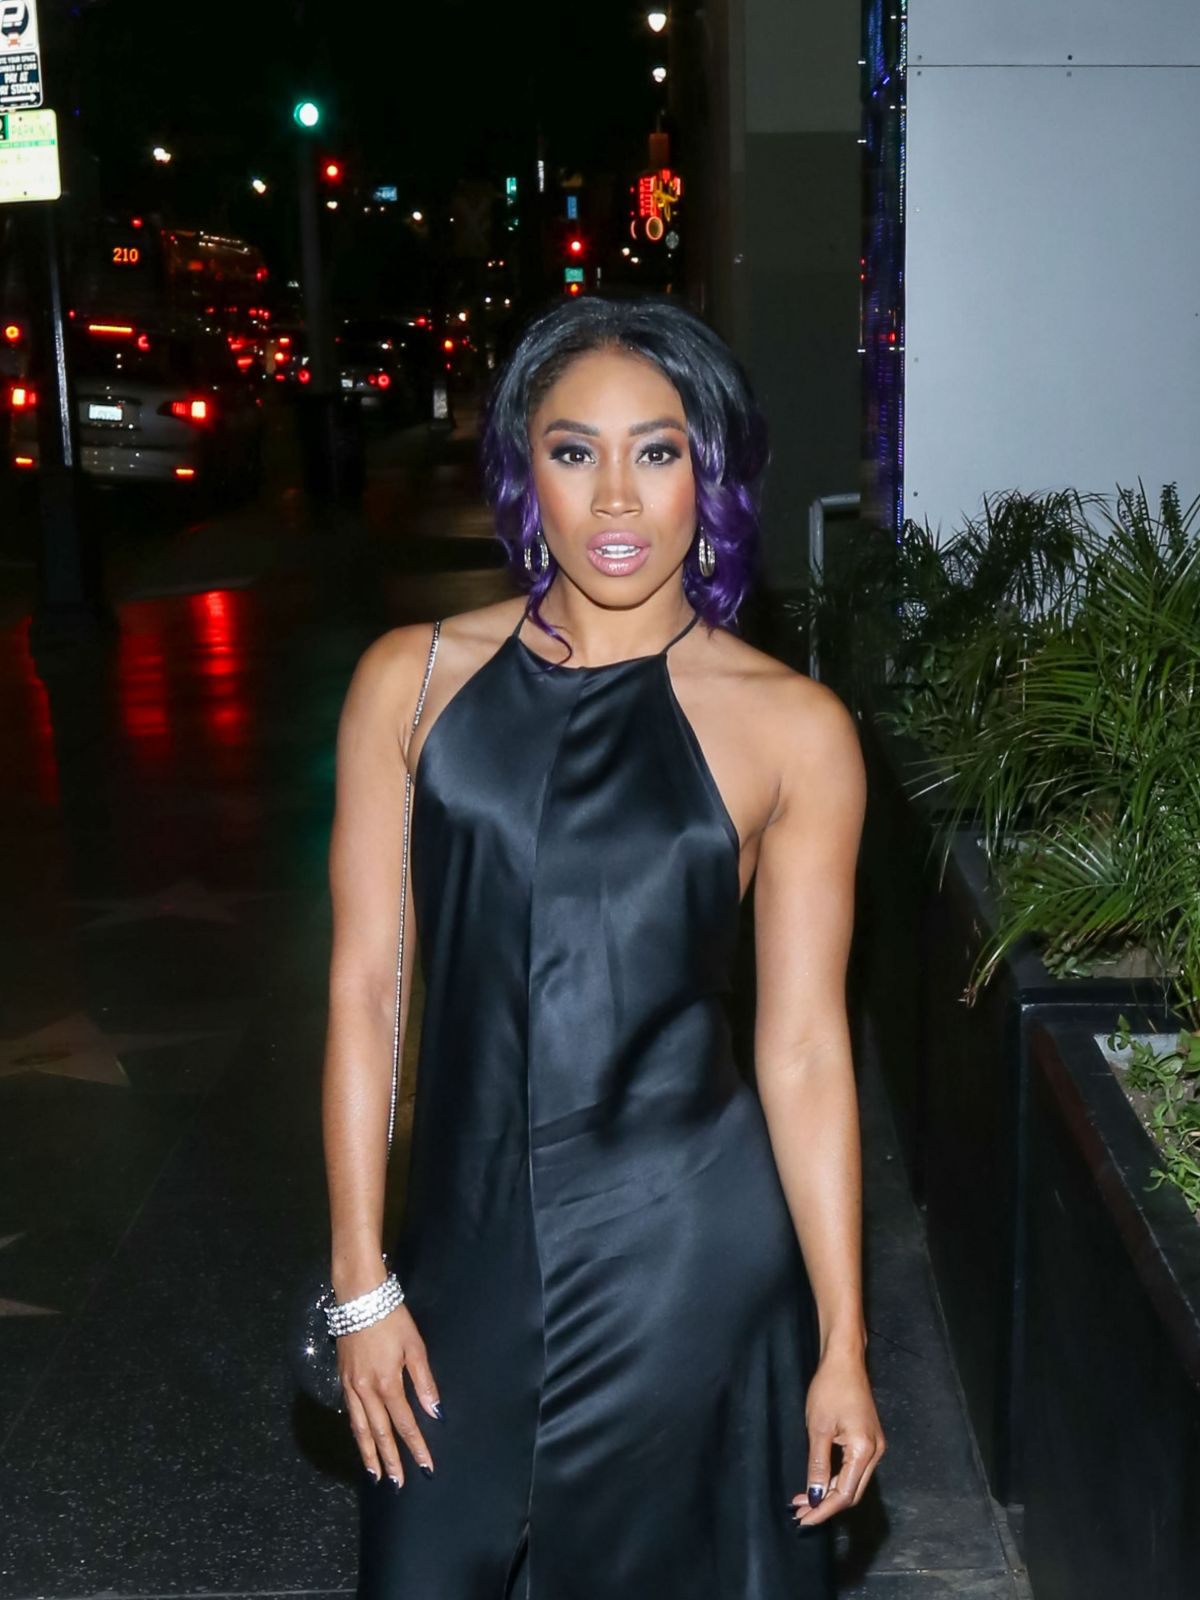 ARIANE ANDREW at The House of Macau in Los Angeles 02/05/2016